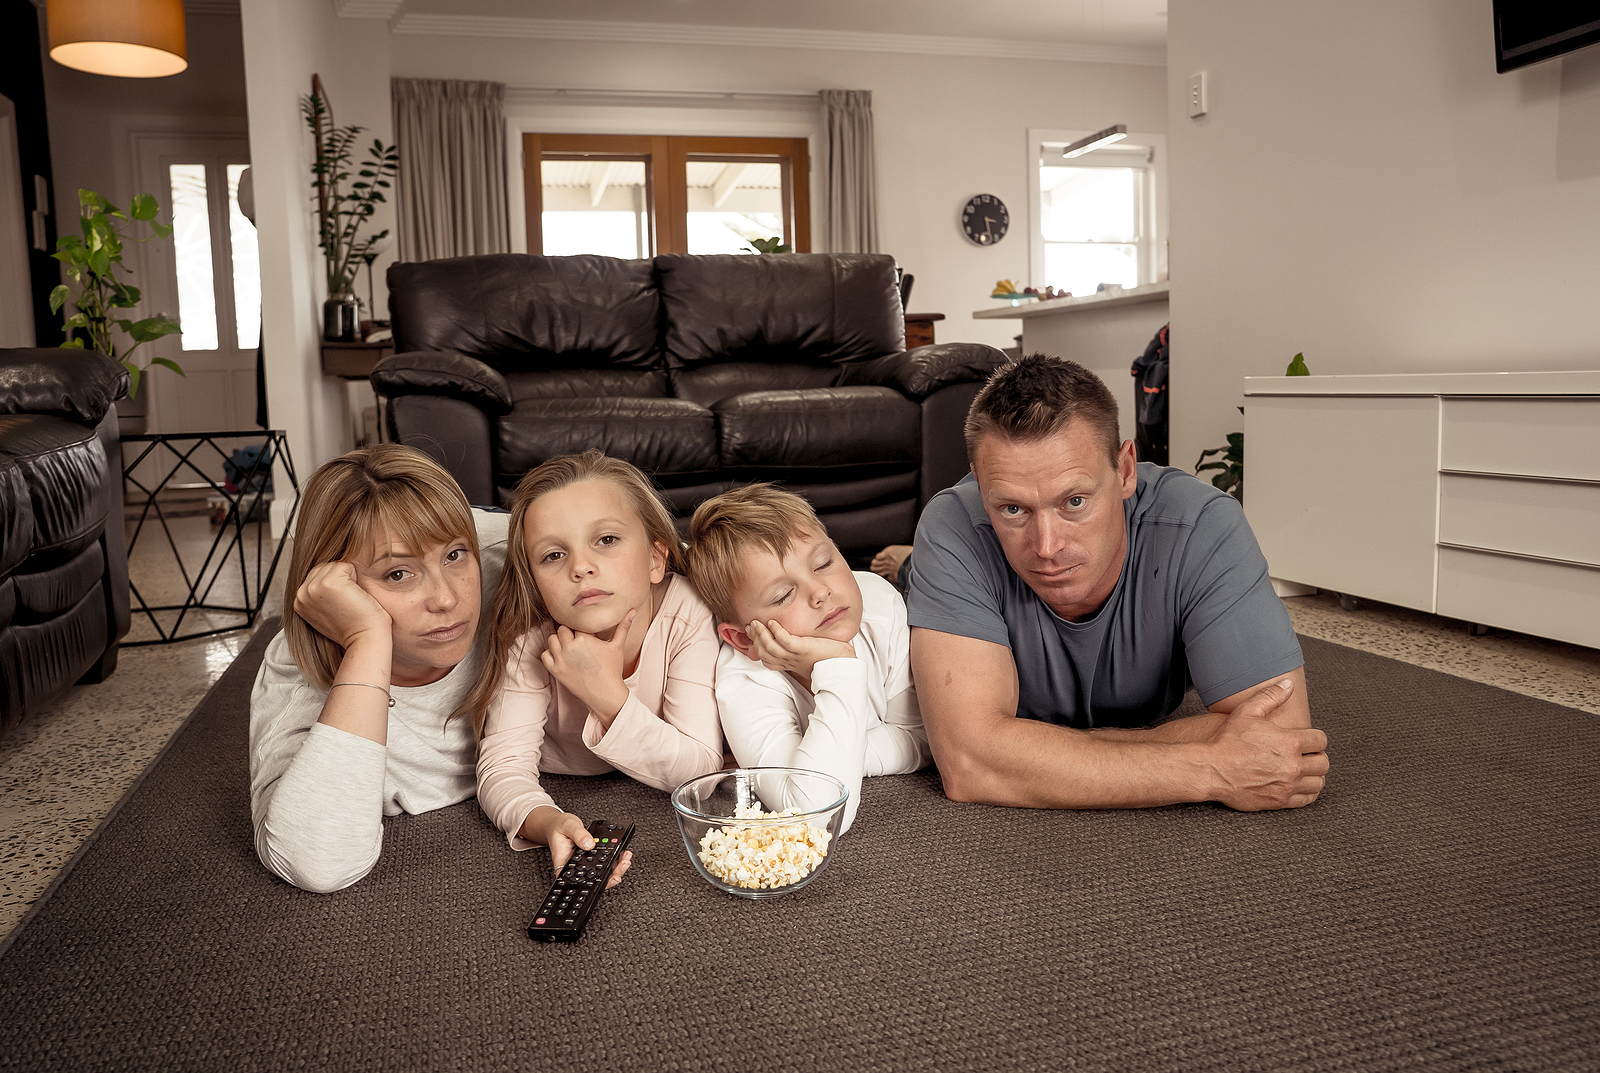 4 Fun Family Activities to Do While Observing Social Distancing